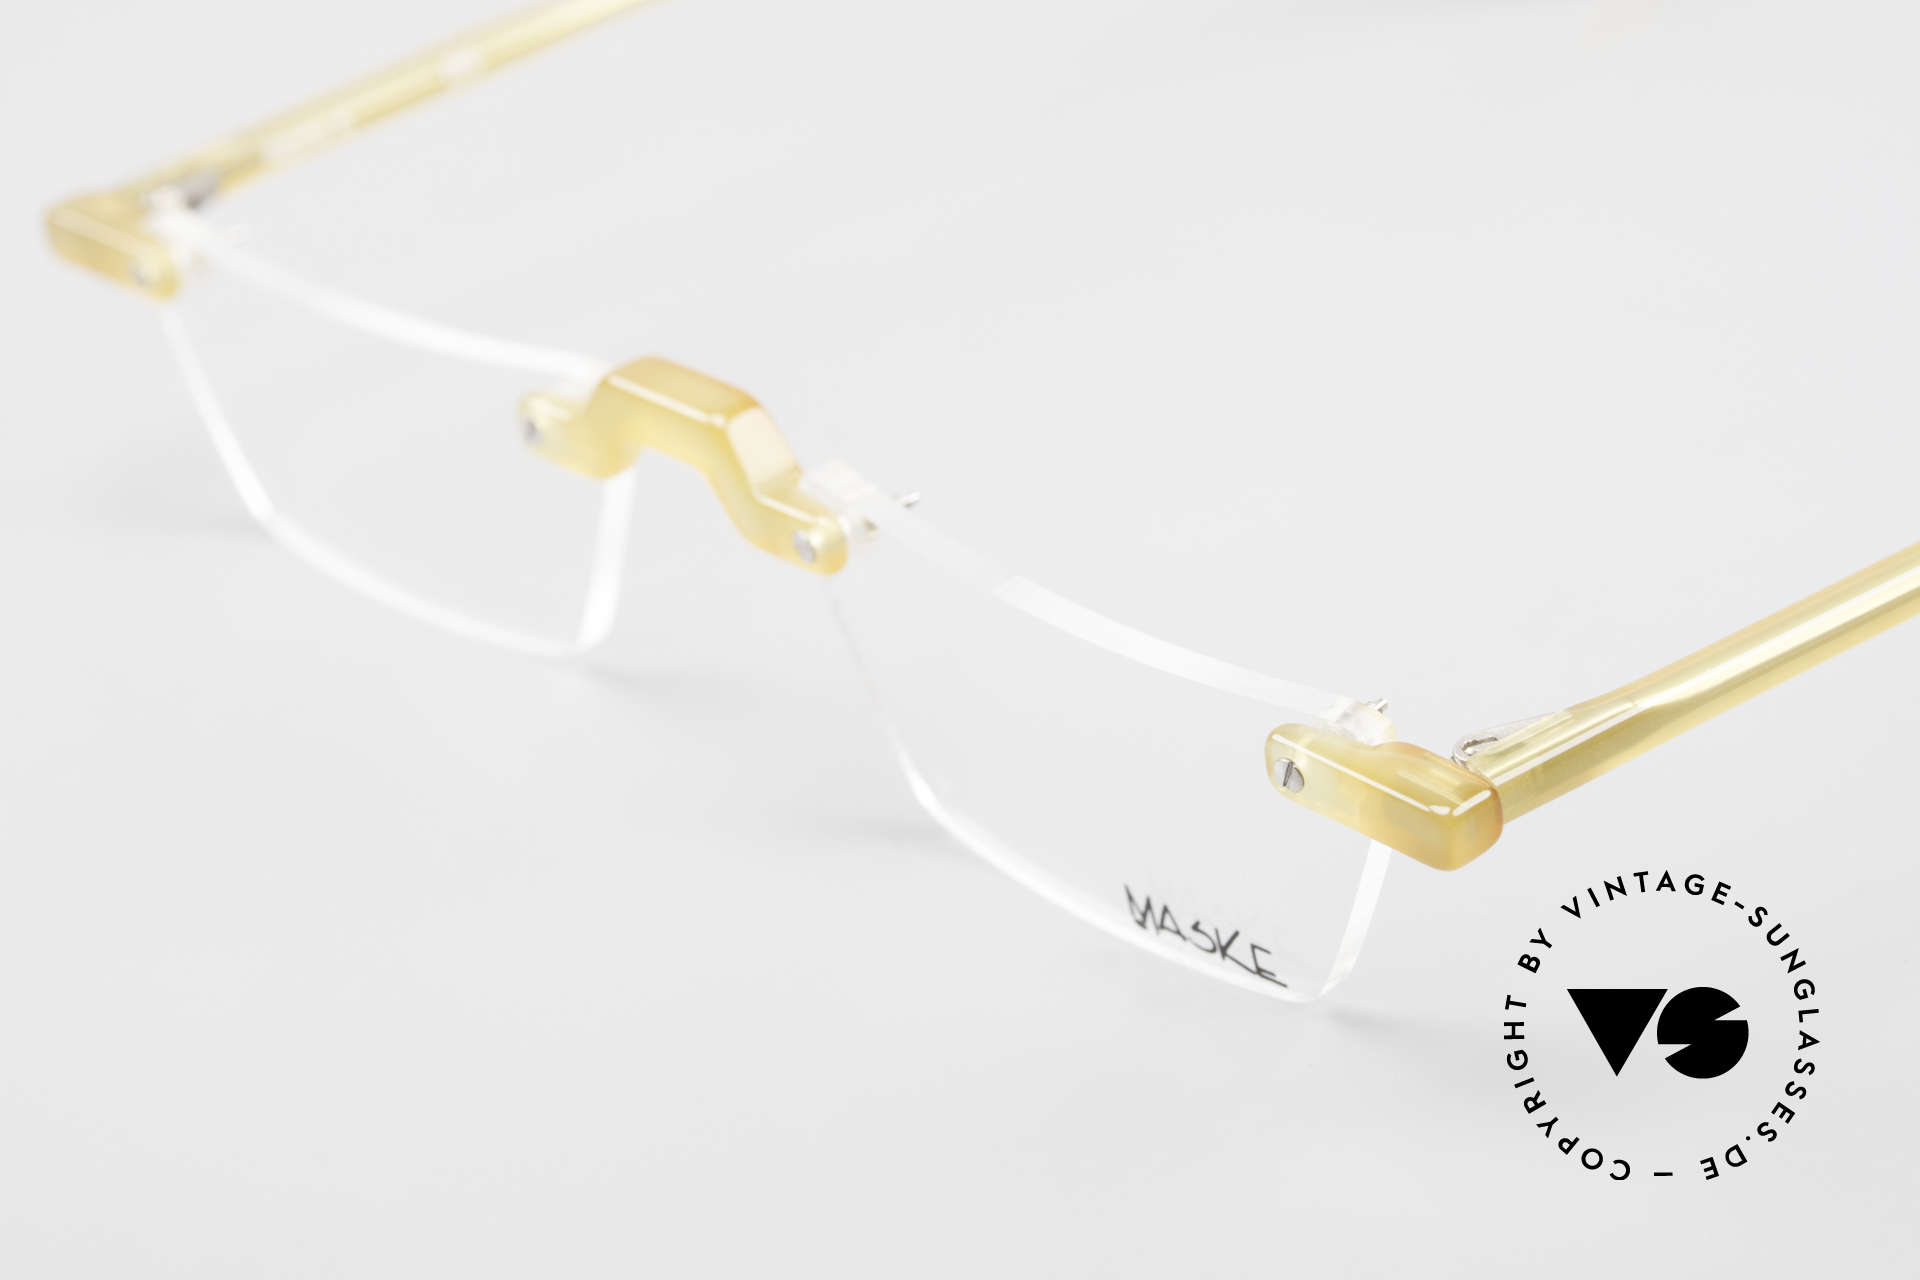 Design Maske Berlin Alpha 8 Artful 90s Reading Eyeglasses, limited-lot production from Berlin, collector's item!, Made for Men and Women